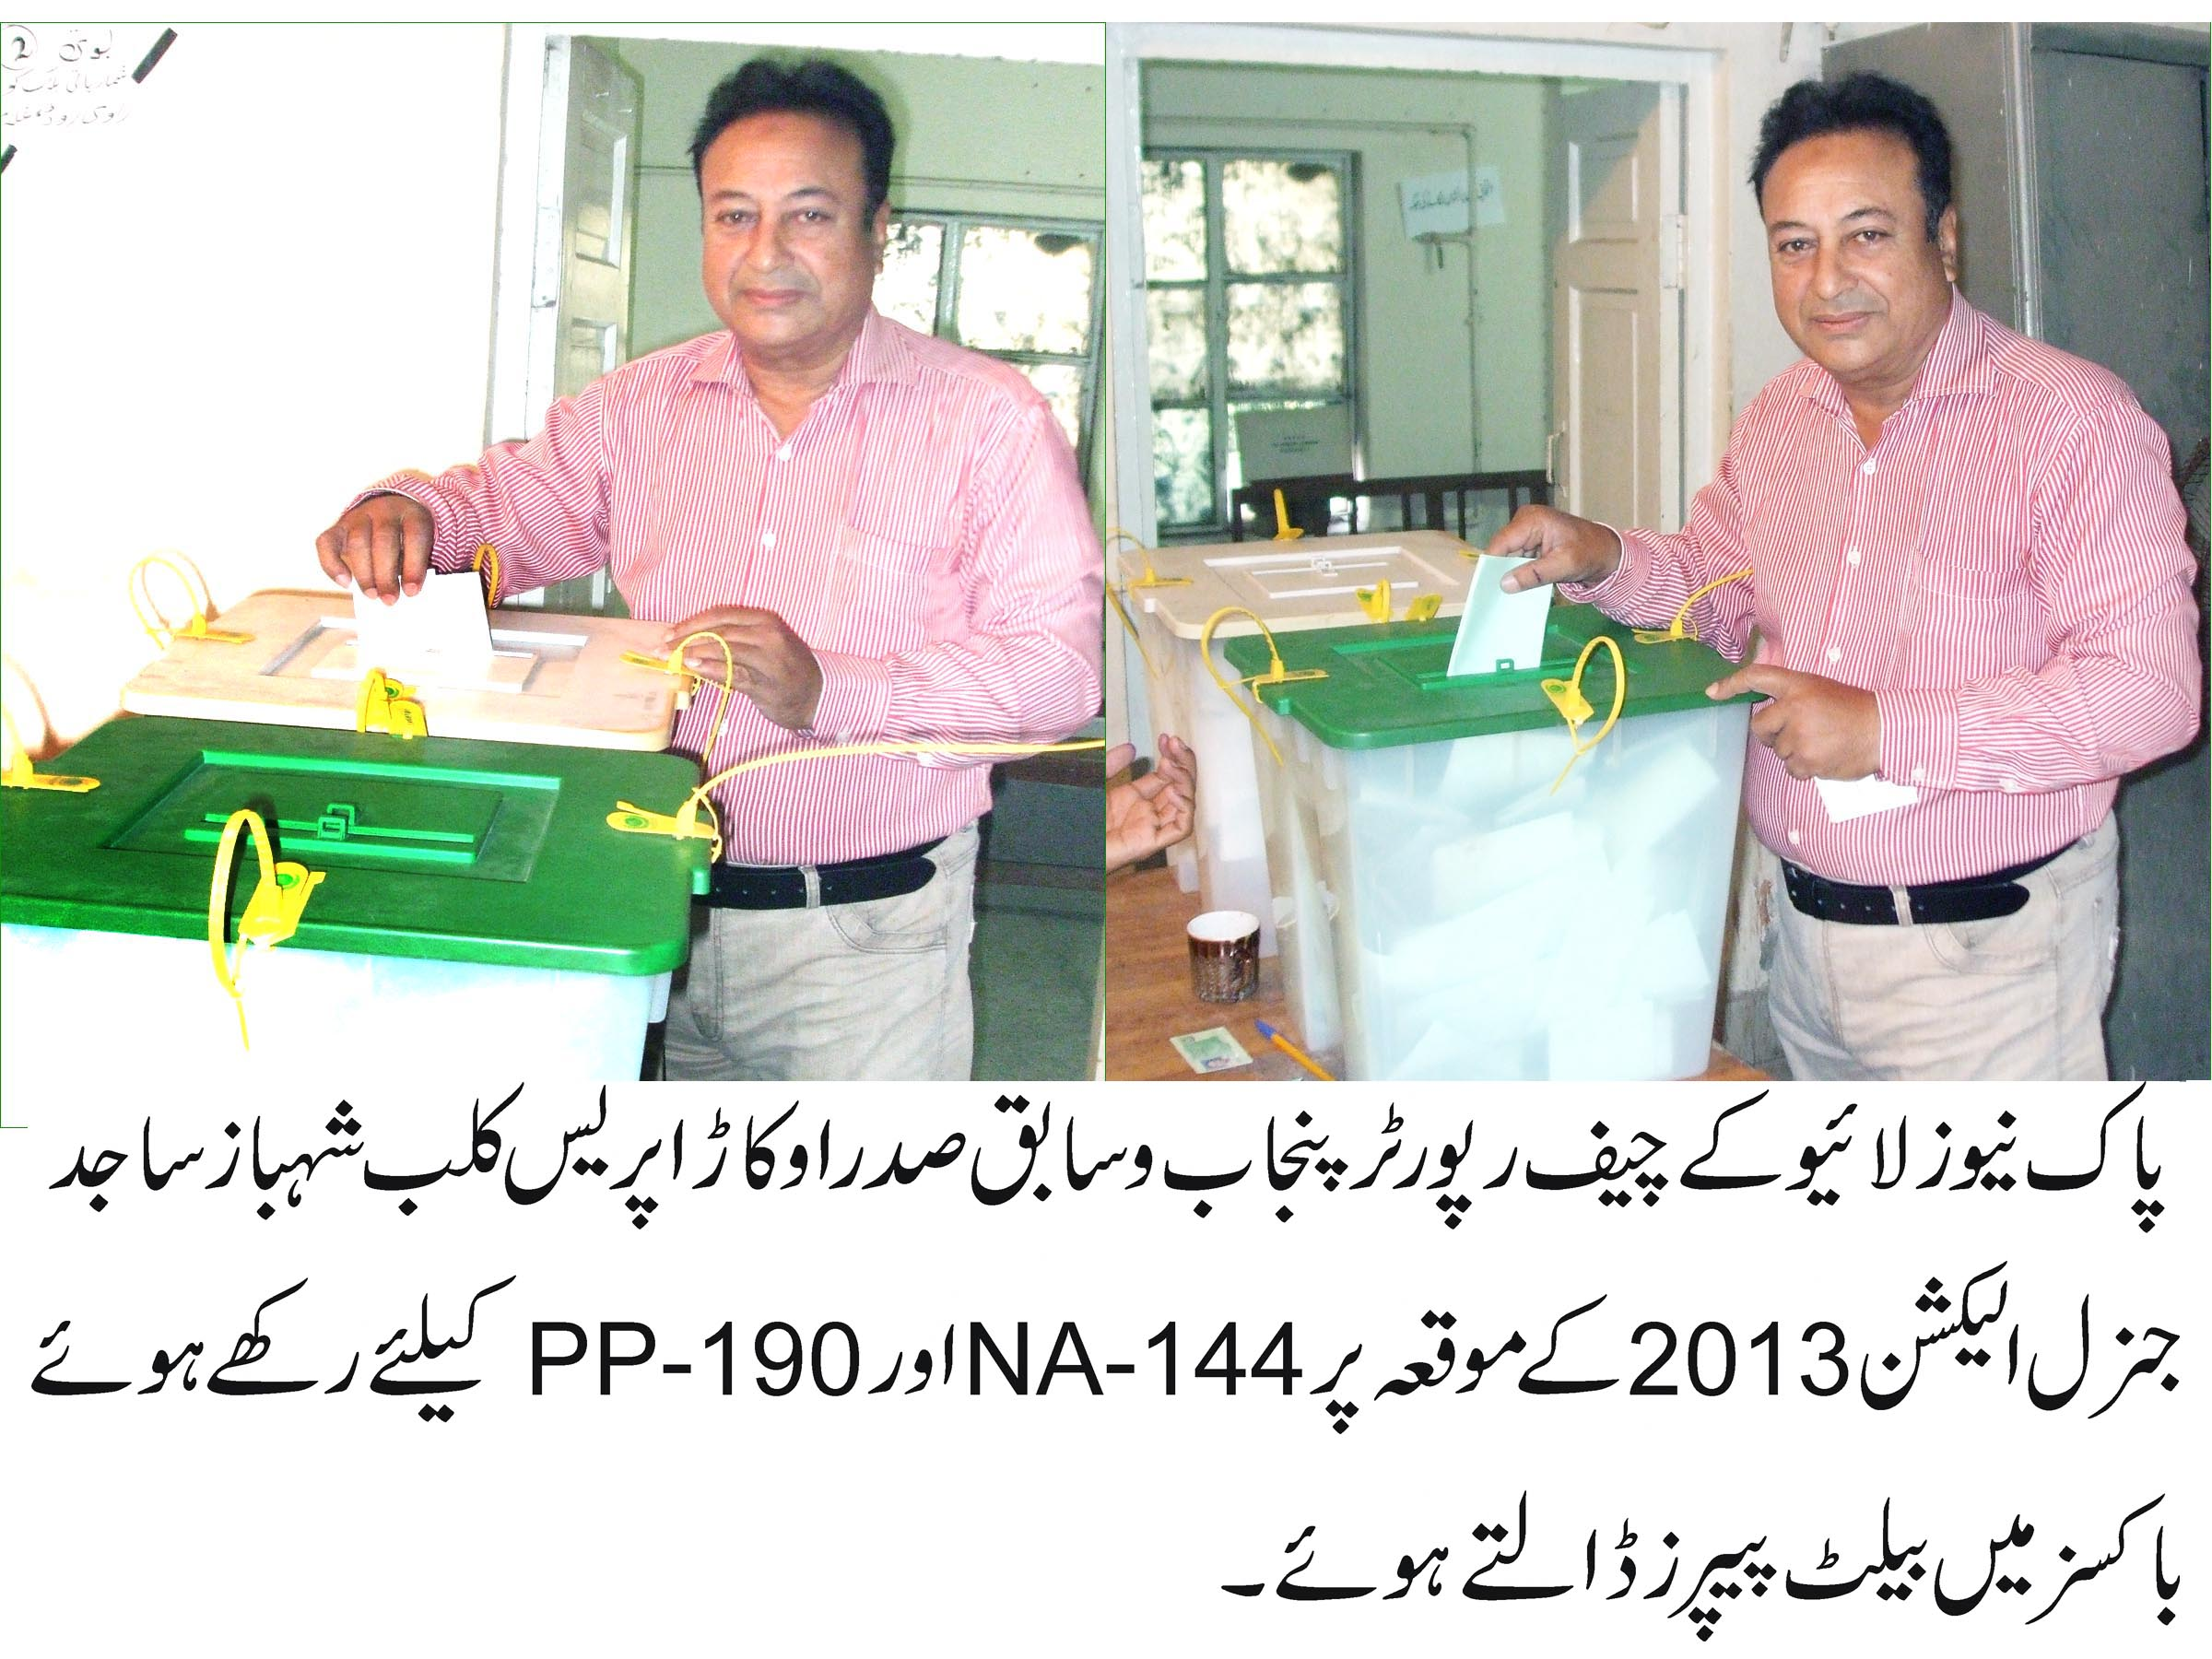 Shahbaz Sajid being casting votes